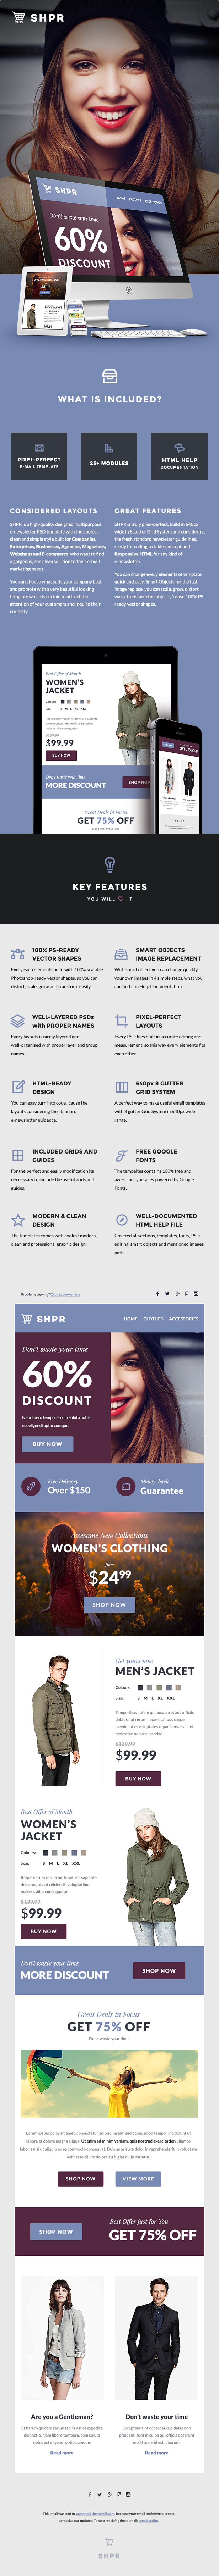 SHPR - E-commerce E-newsletter Template